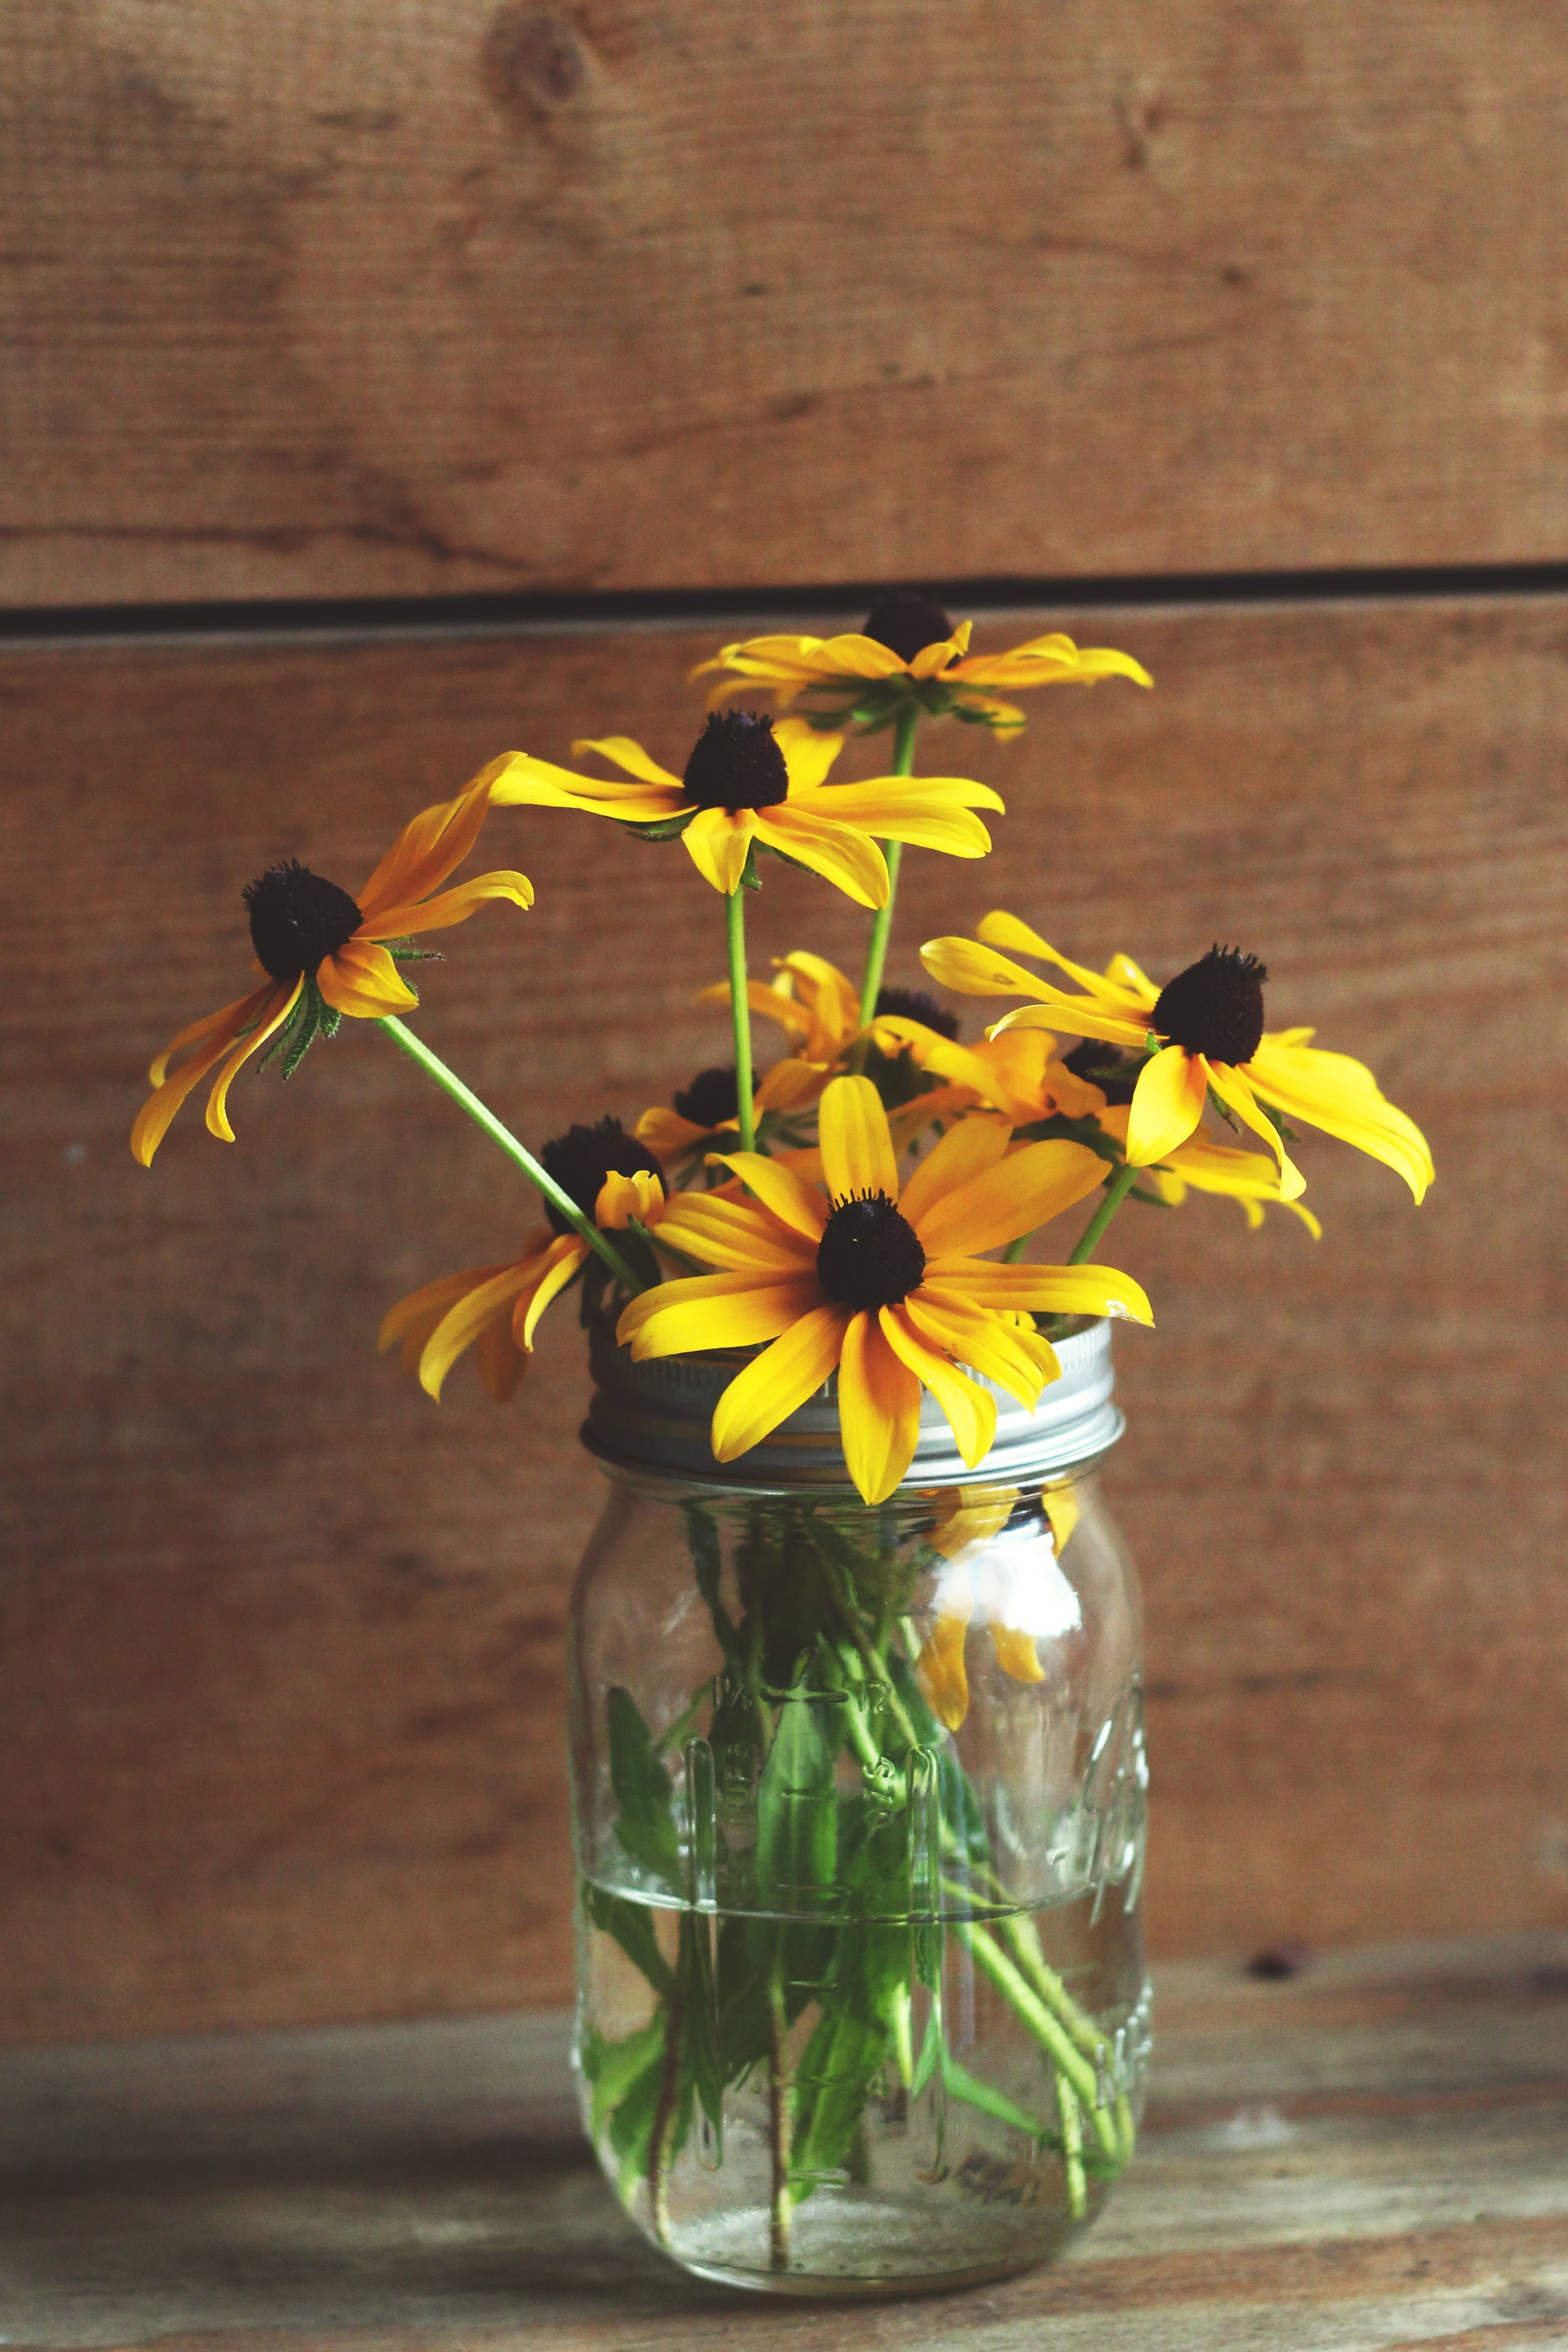 Free stock photo of flowers, yellow, glass, spring